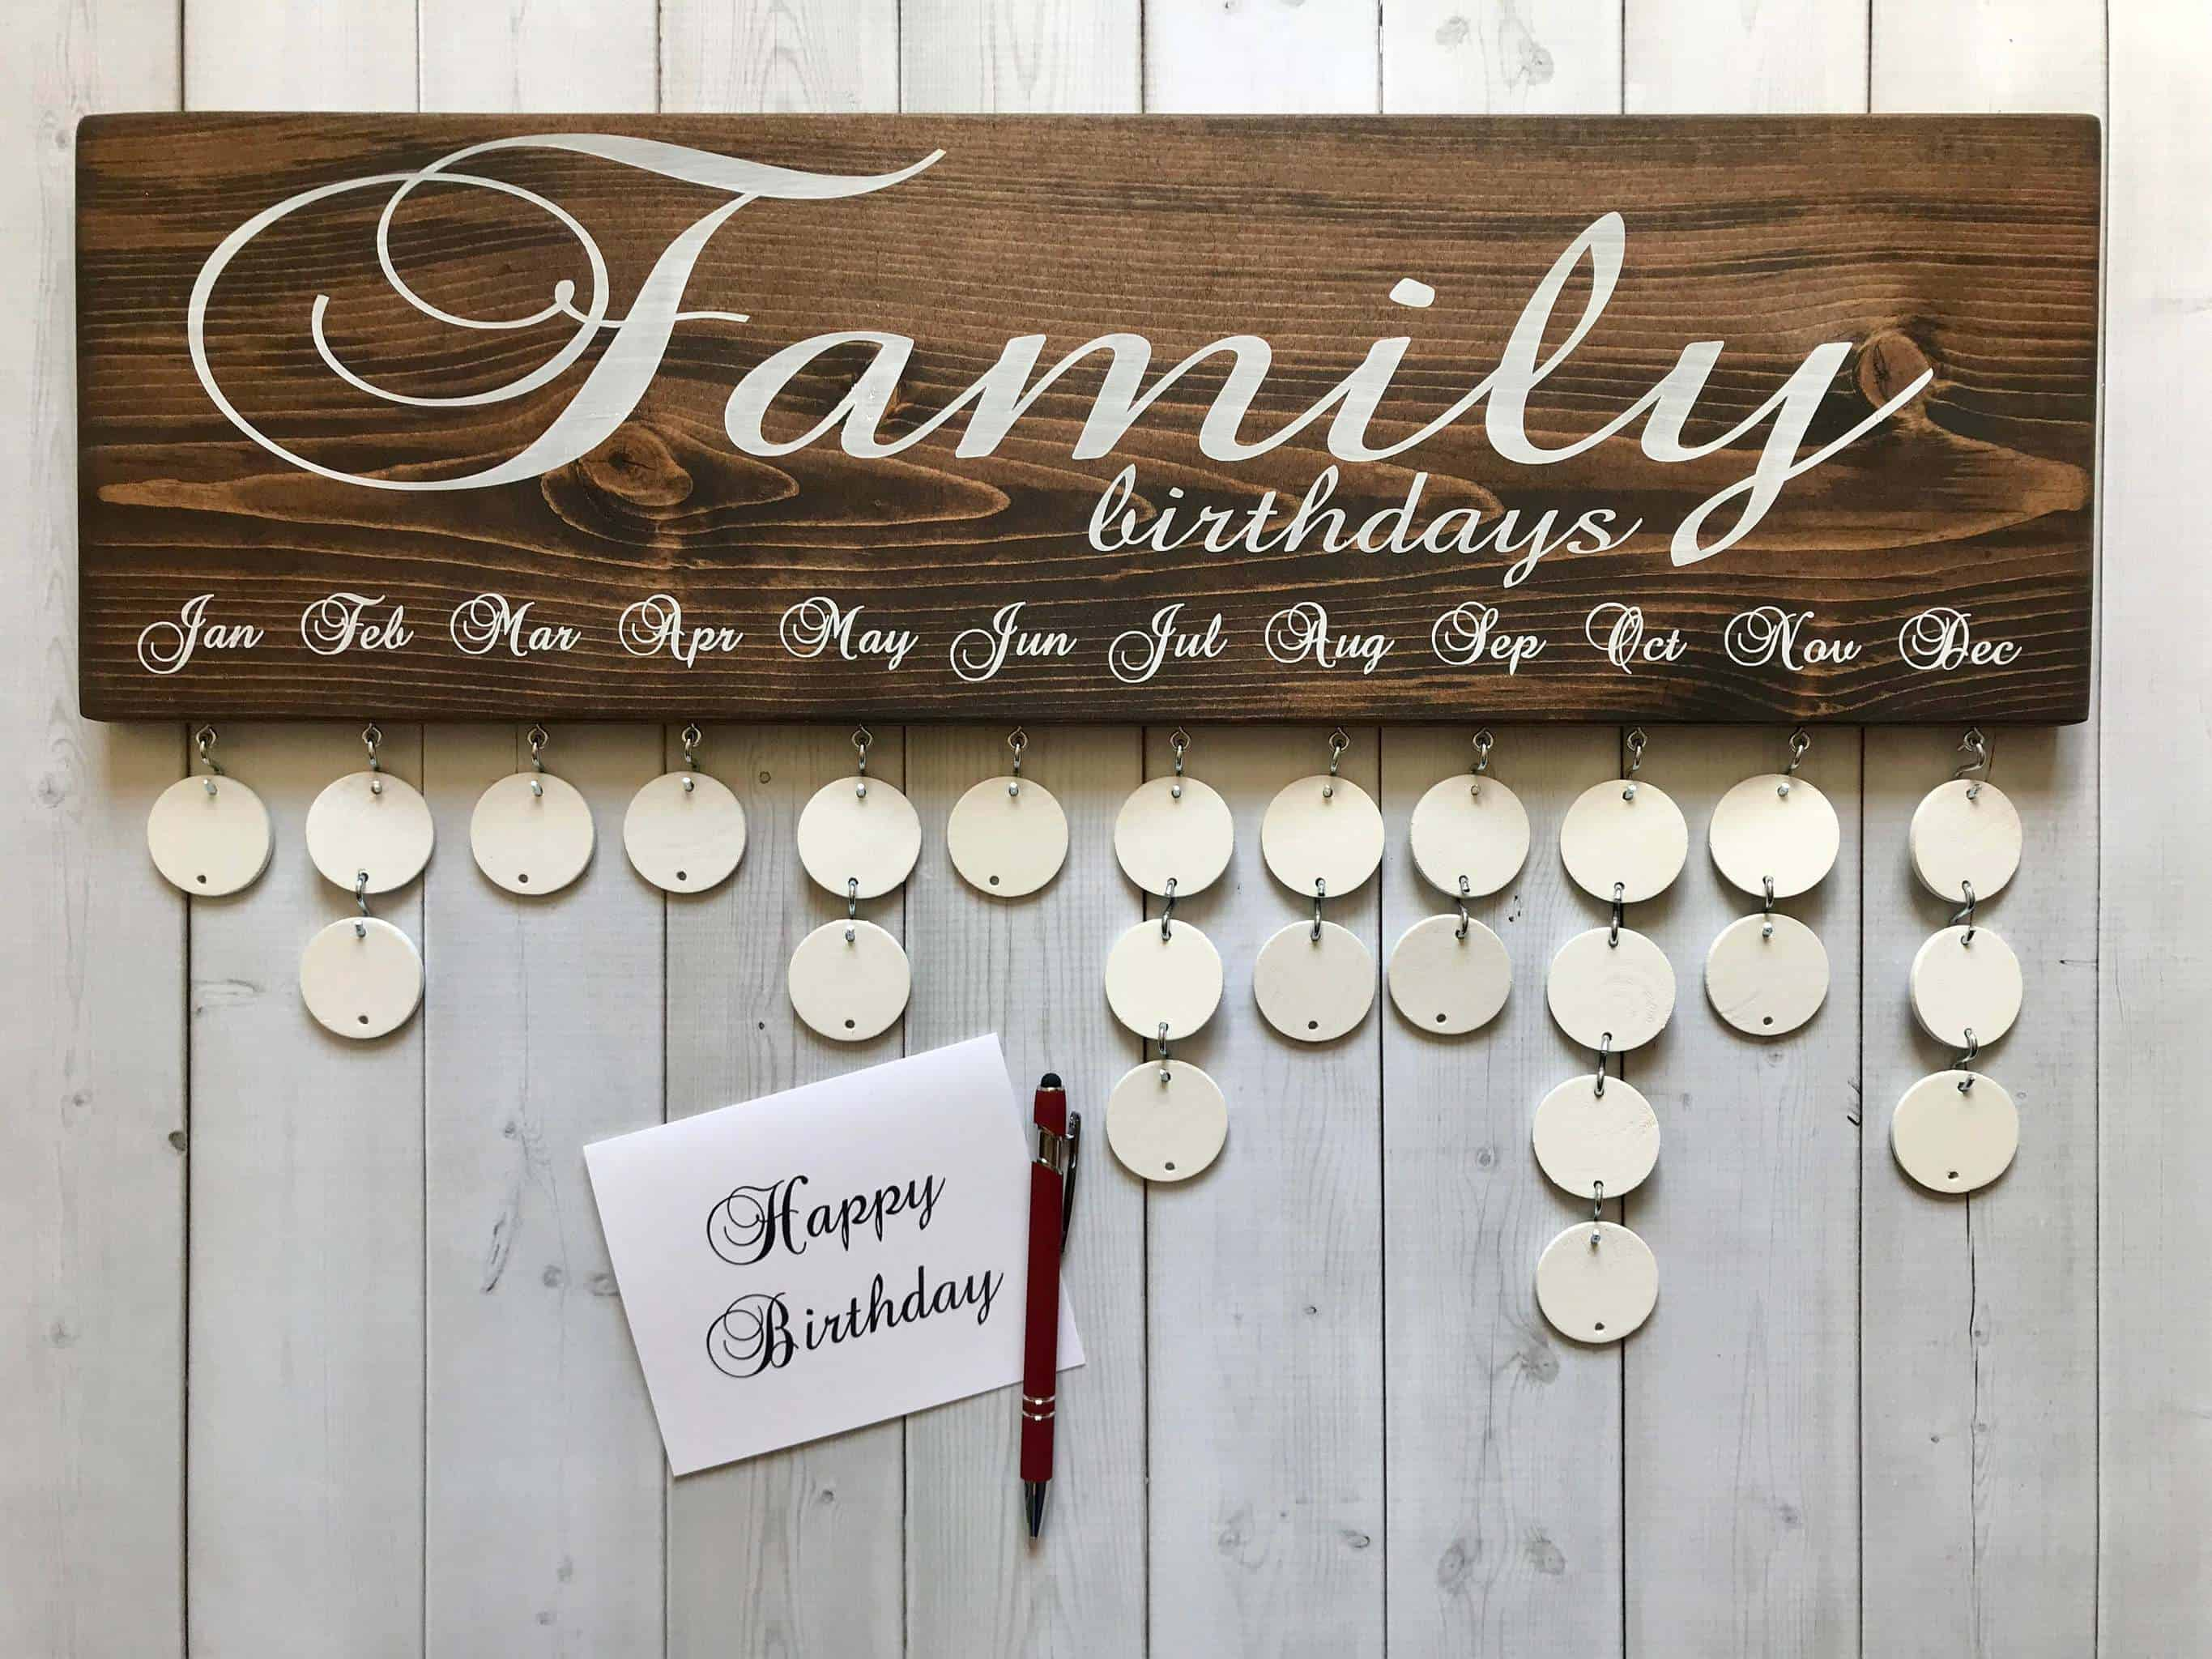 Wedding gifts for parents - family birthday board